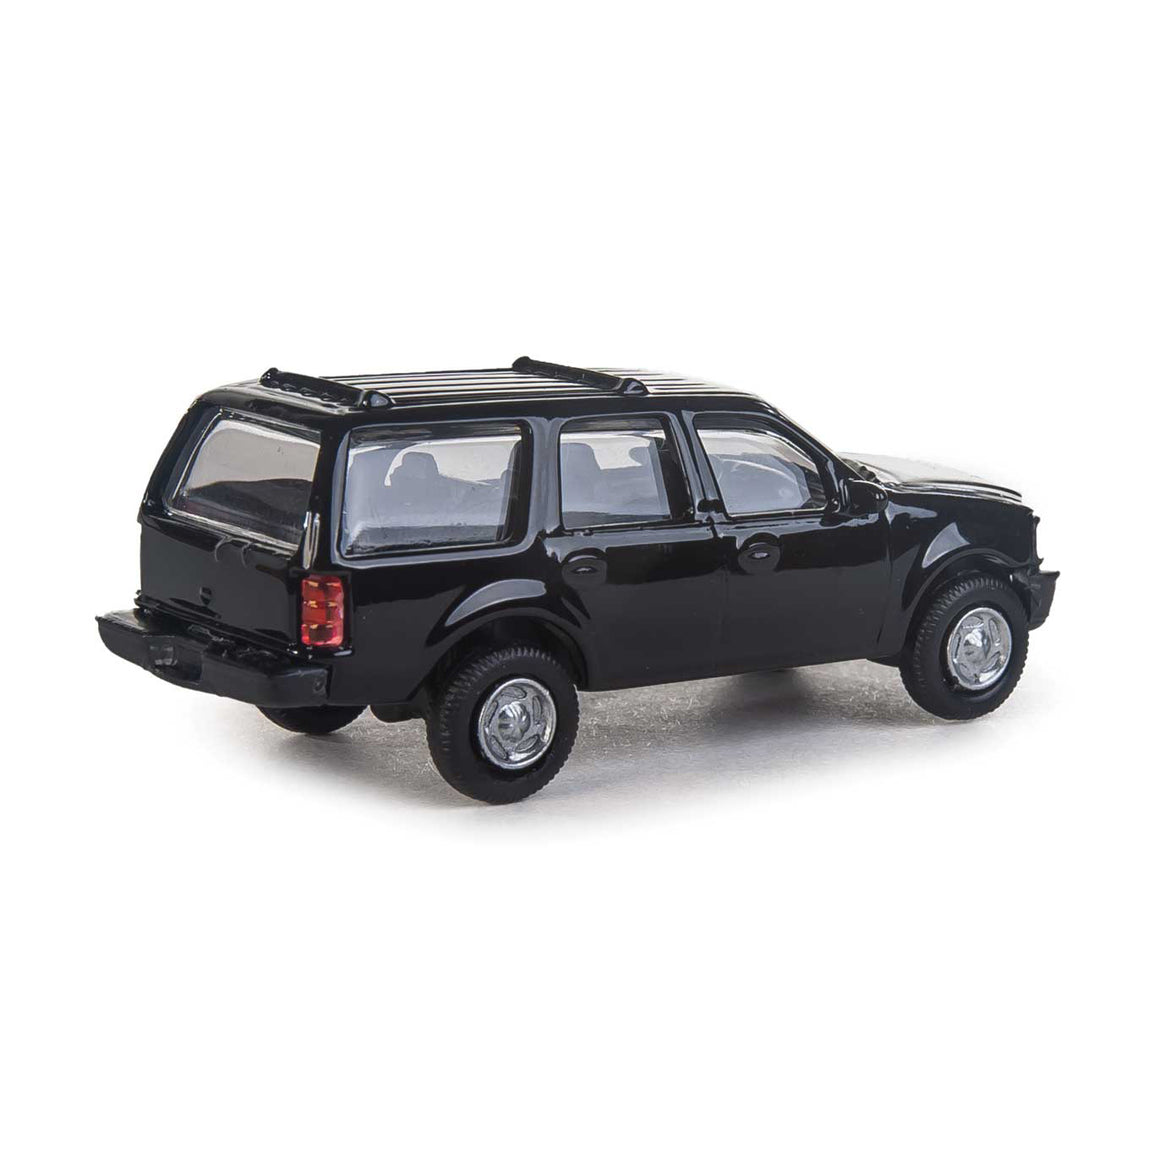 HO Scale: Ford® Expedition Service Vehicle - Unmarked Black